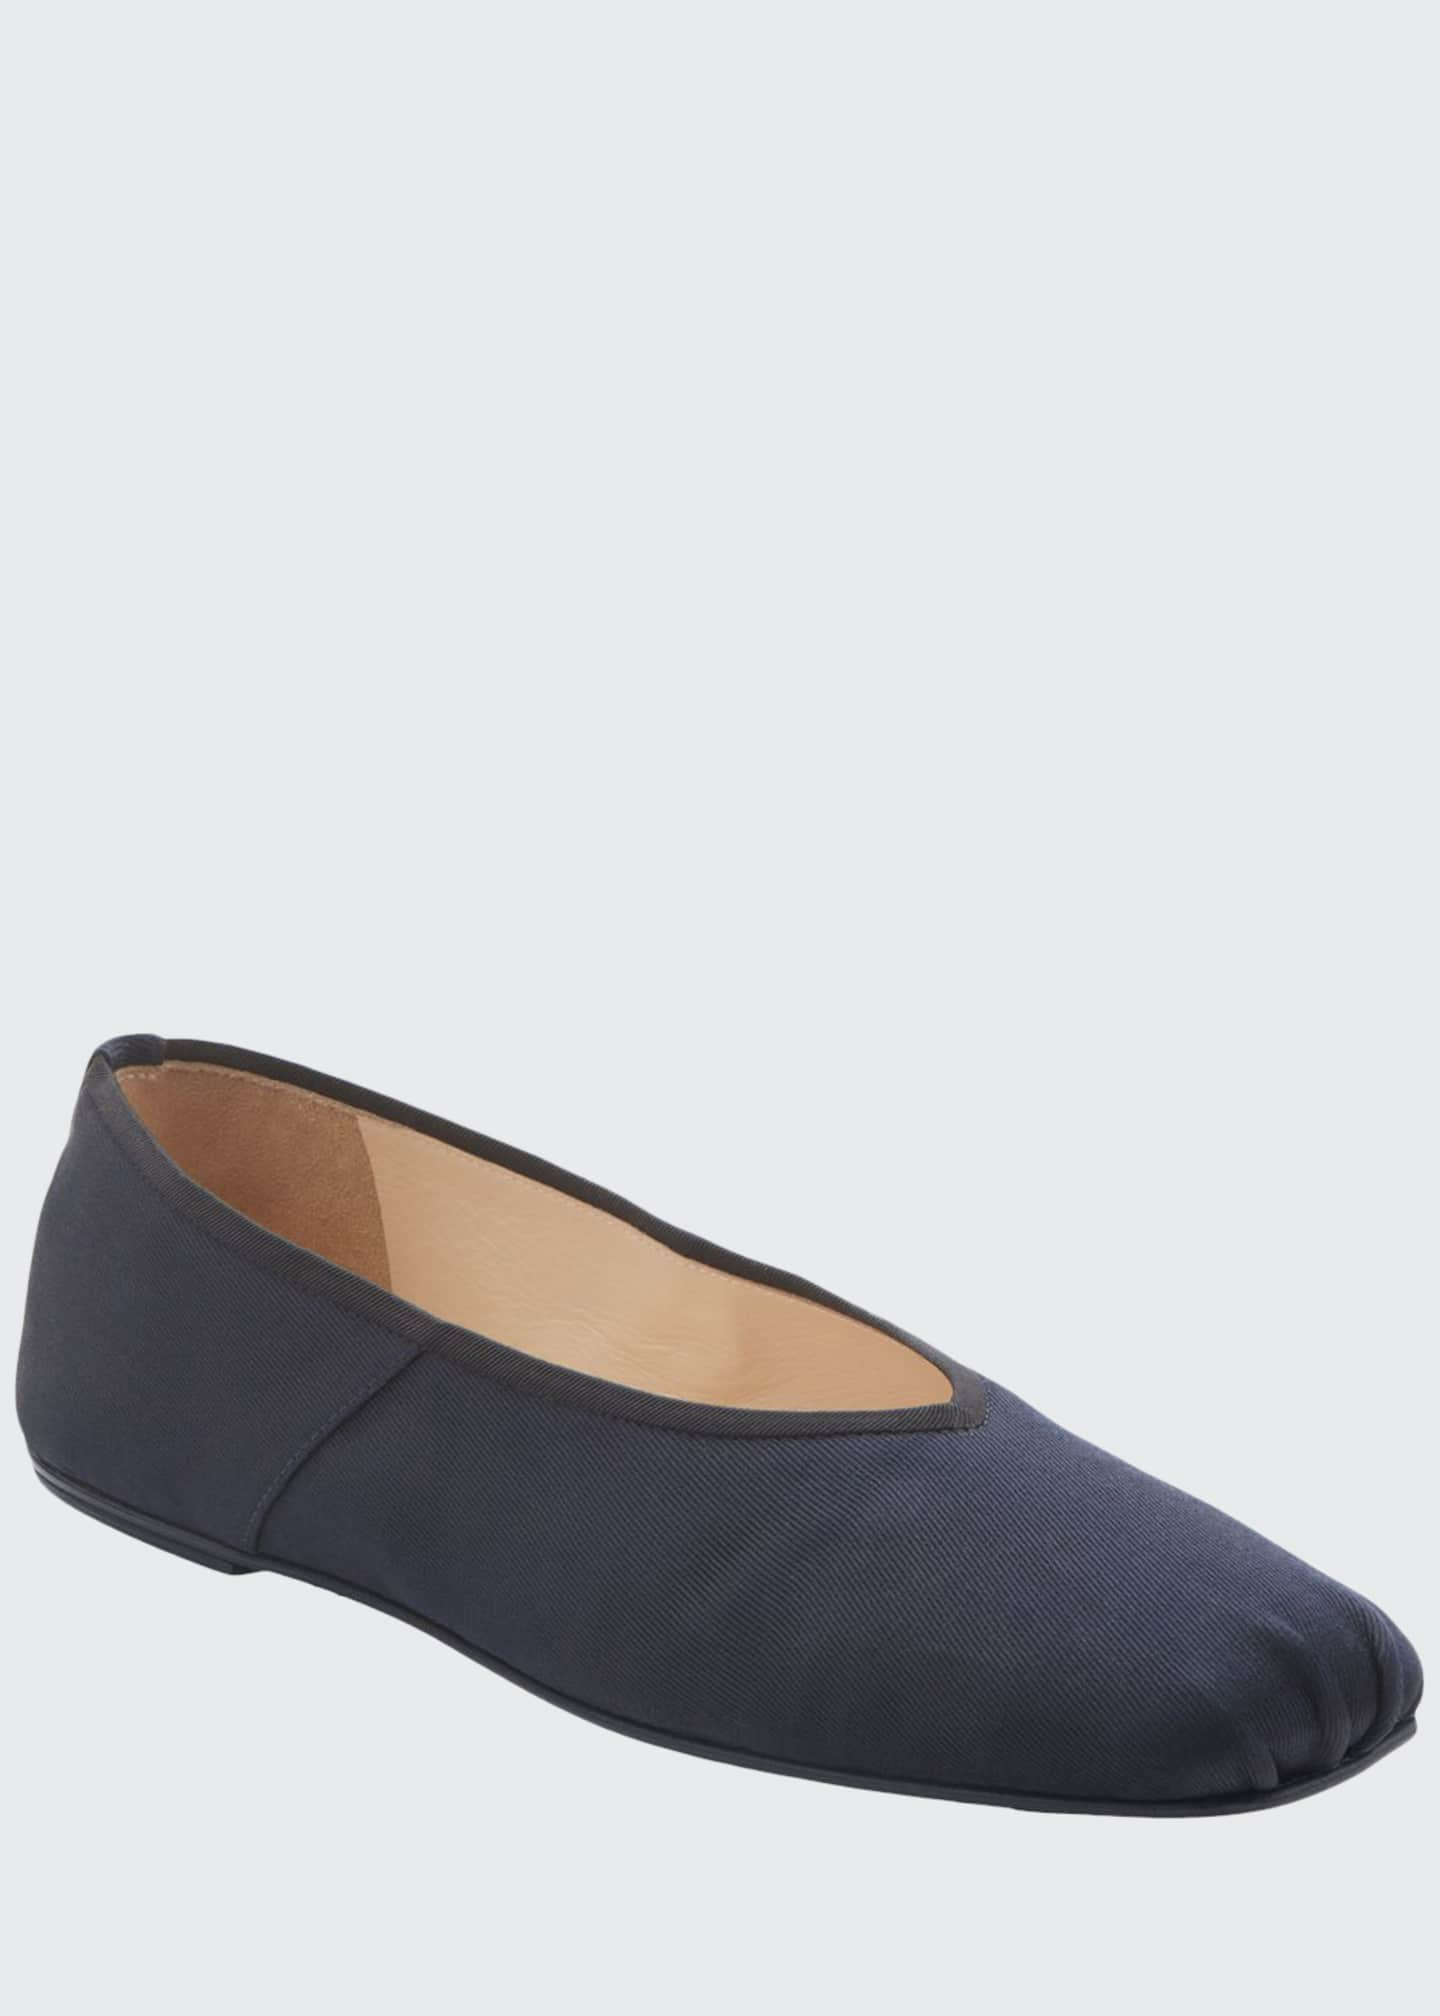 Image 1 of 3: Canvas Ballet Flats